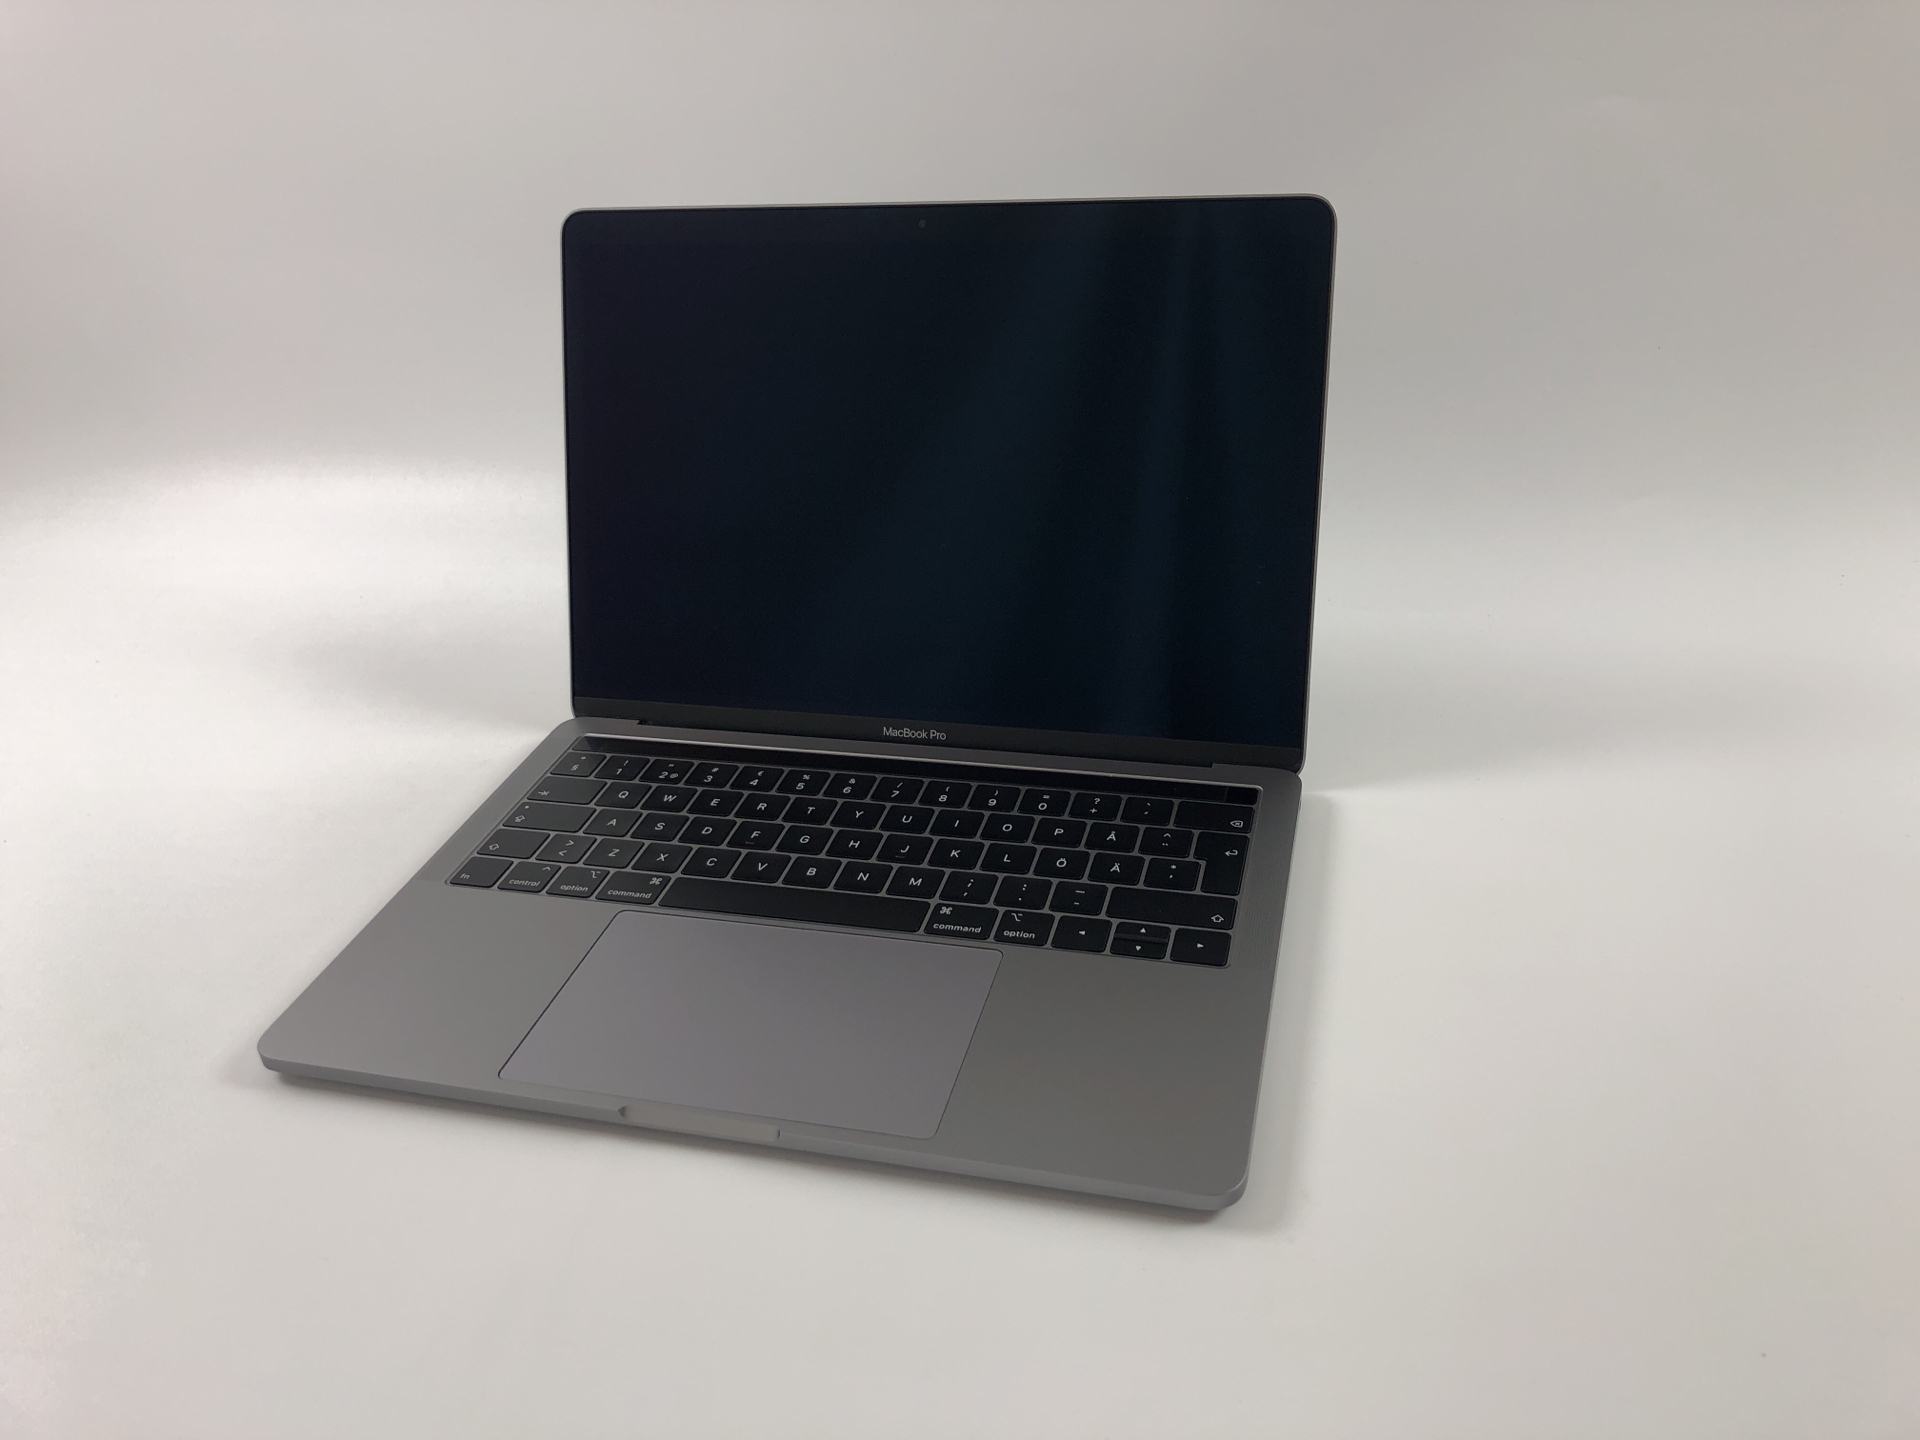 "MacBook Pro 13"" 2TBT Mid 2019 (Intel Quad-Core i5 1.4 GHz 16 GB RAM 128 GB SSD), Space Gray, Intel Quad-Core i5 1.4 GHz, 16 GB RAM, 128 GB SSD, bild 1"